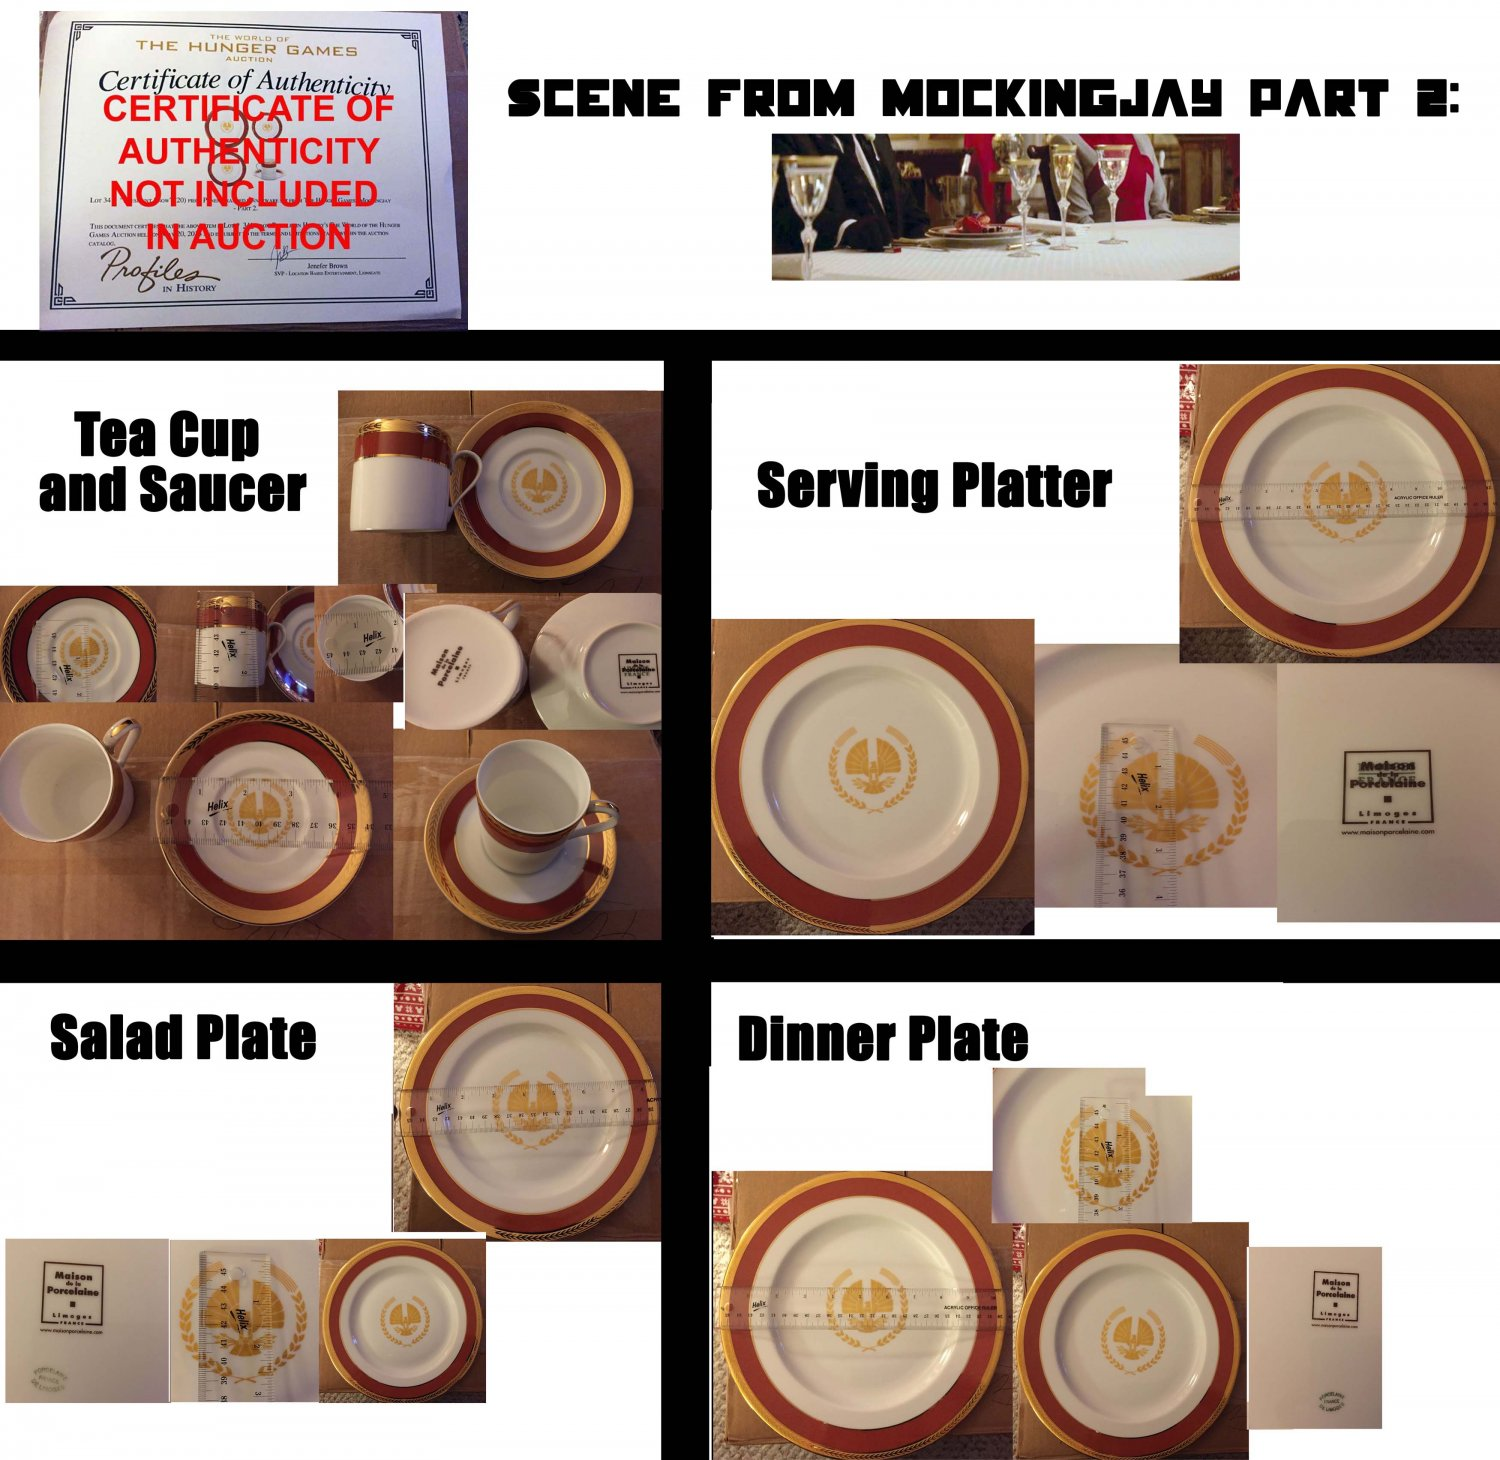 President Snow teacup, saucer, salad, dinner & serving plates - onscreen props from Mockingjay Pt. 2